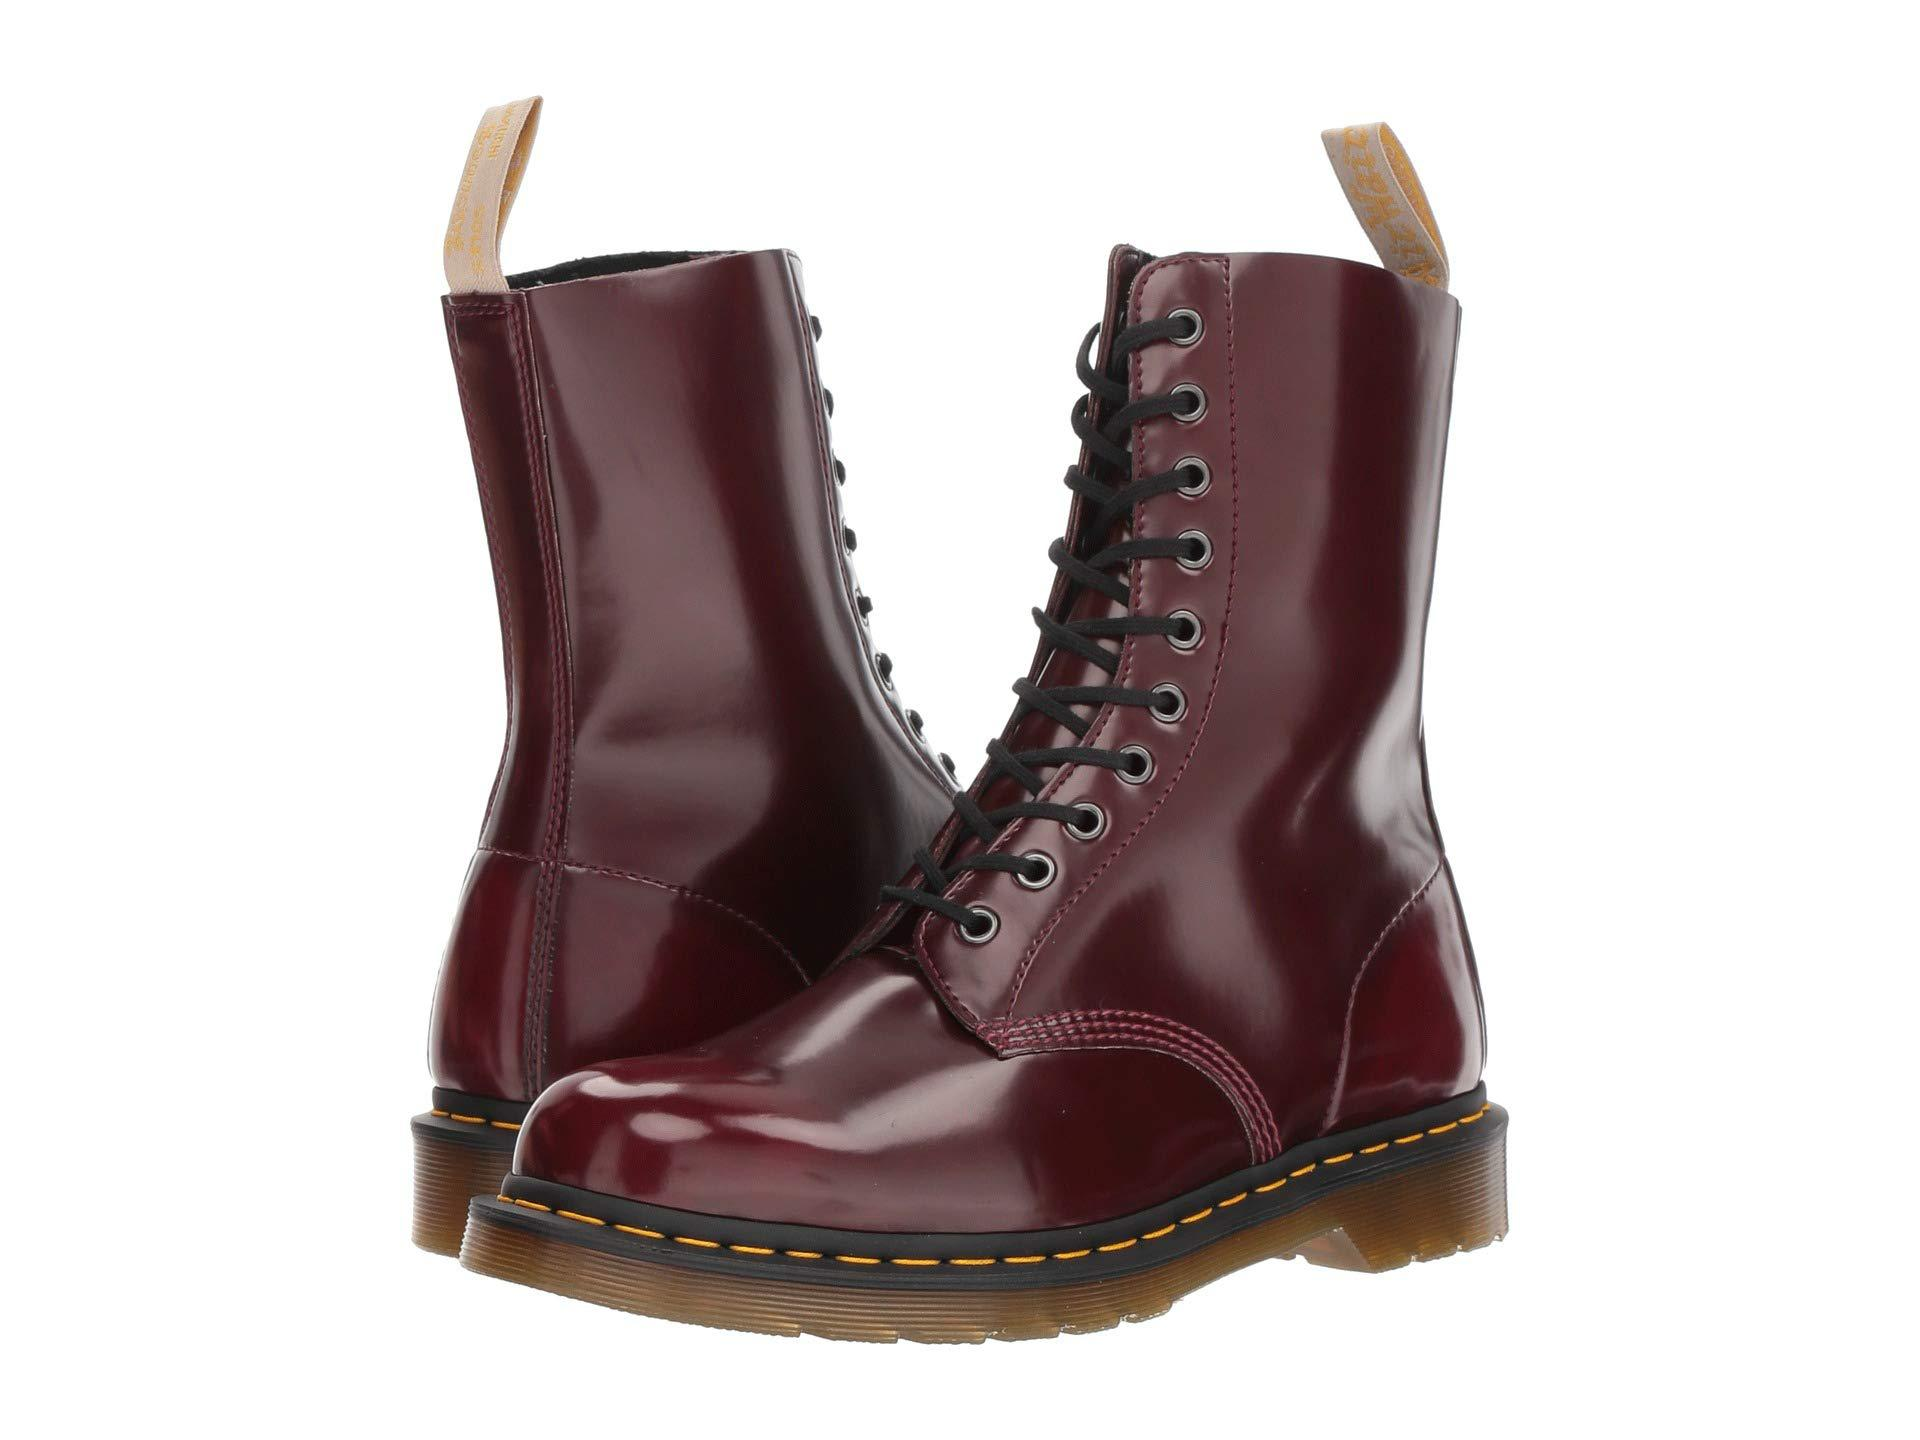 Lyst - Dr. Martens 1490 Vegan (cherry Red Cambridge Brush) Boots in ... 6e903dccdba91